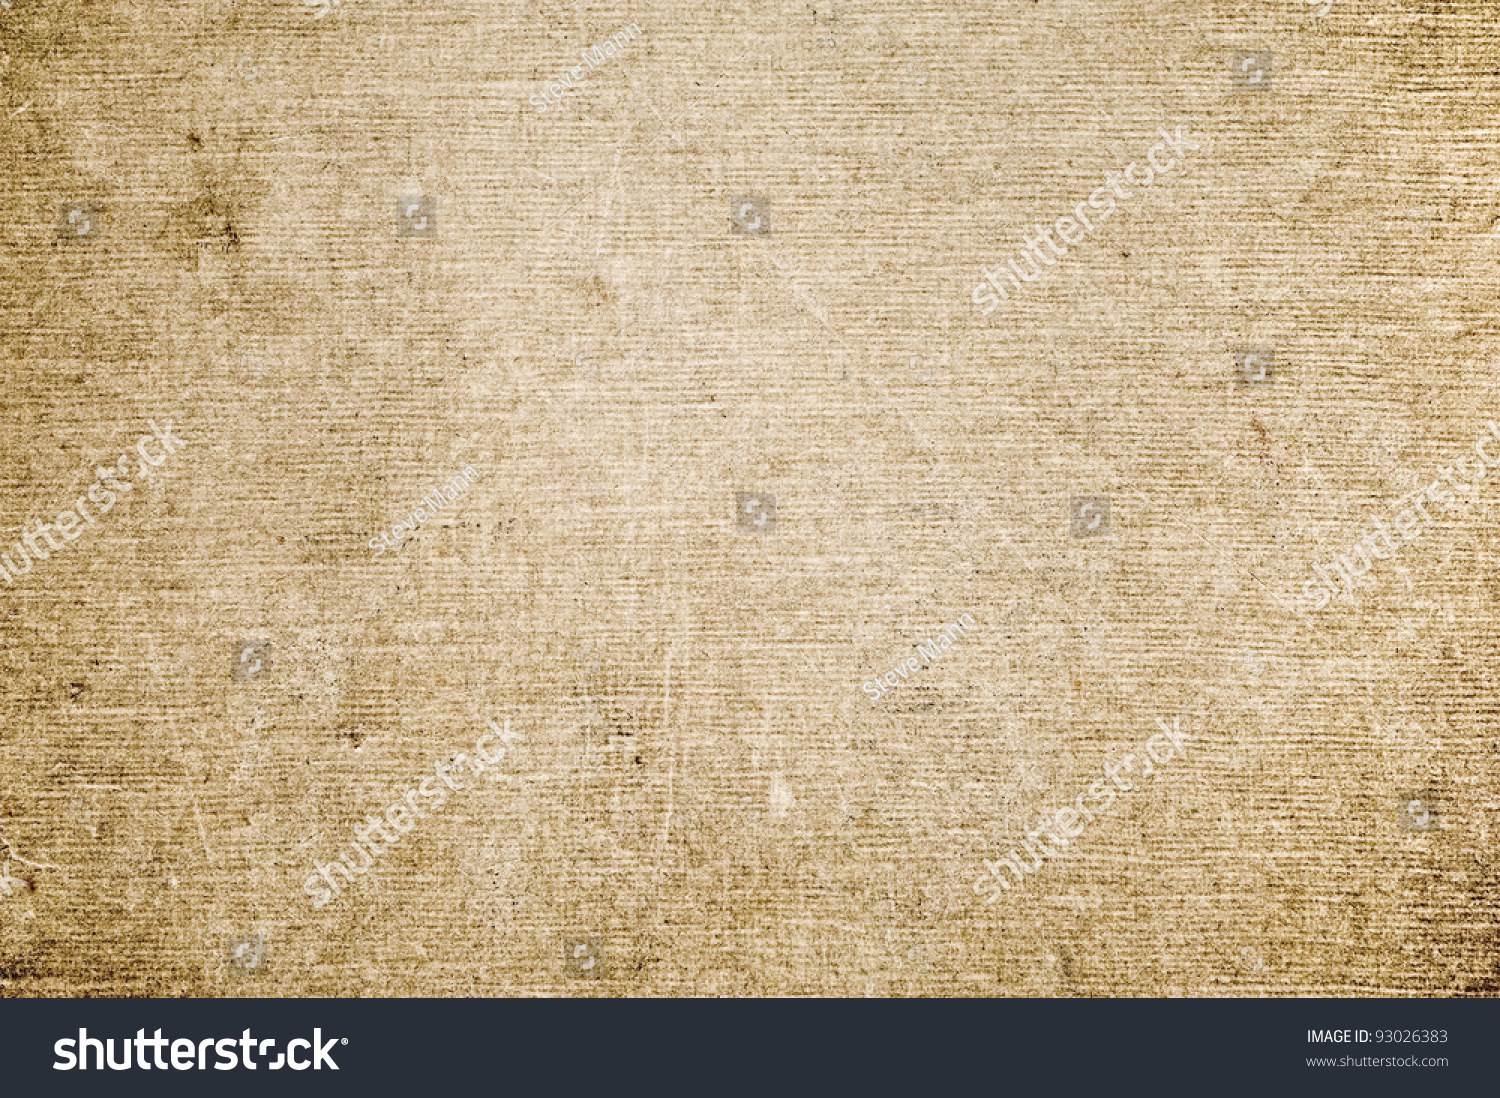 Grunge Book Cover Texture : Vintage book cover grunge background stock photo